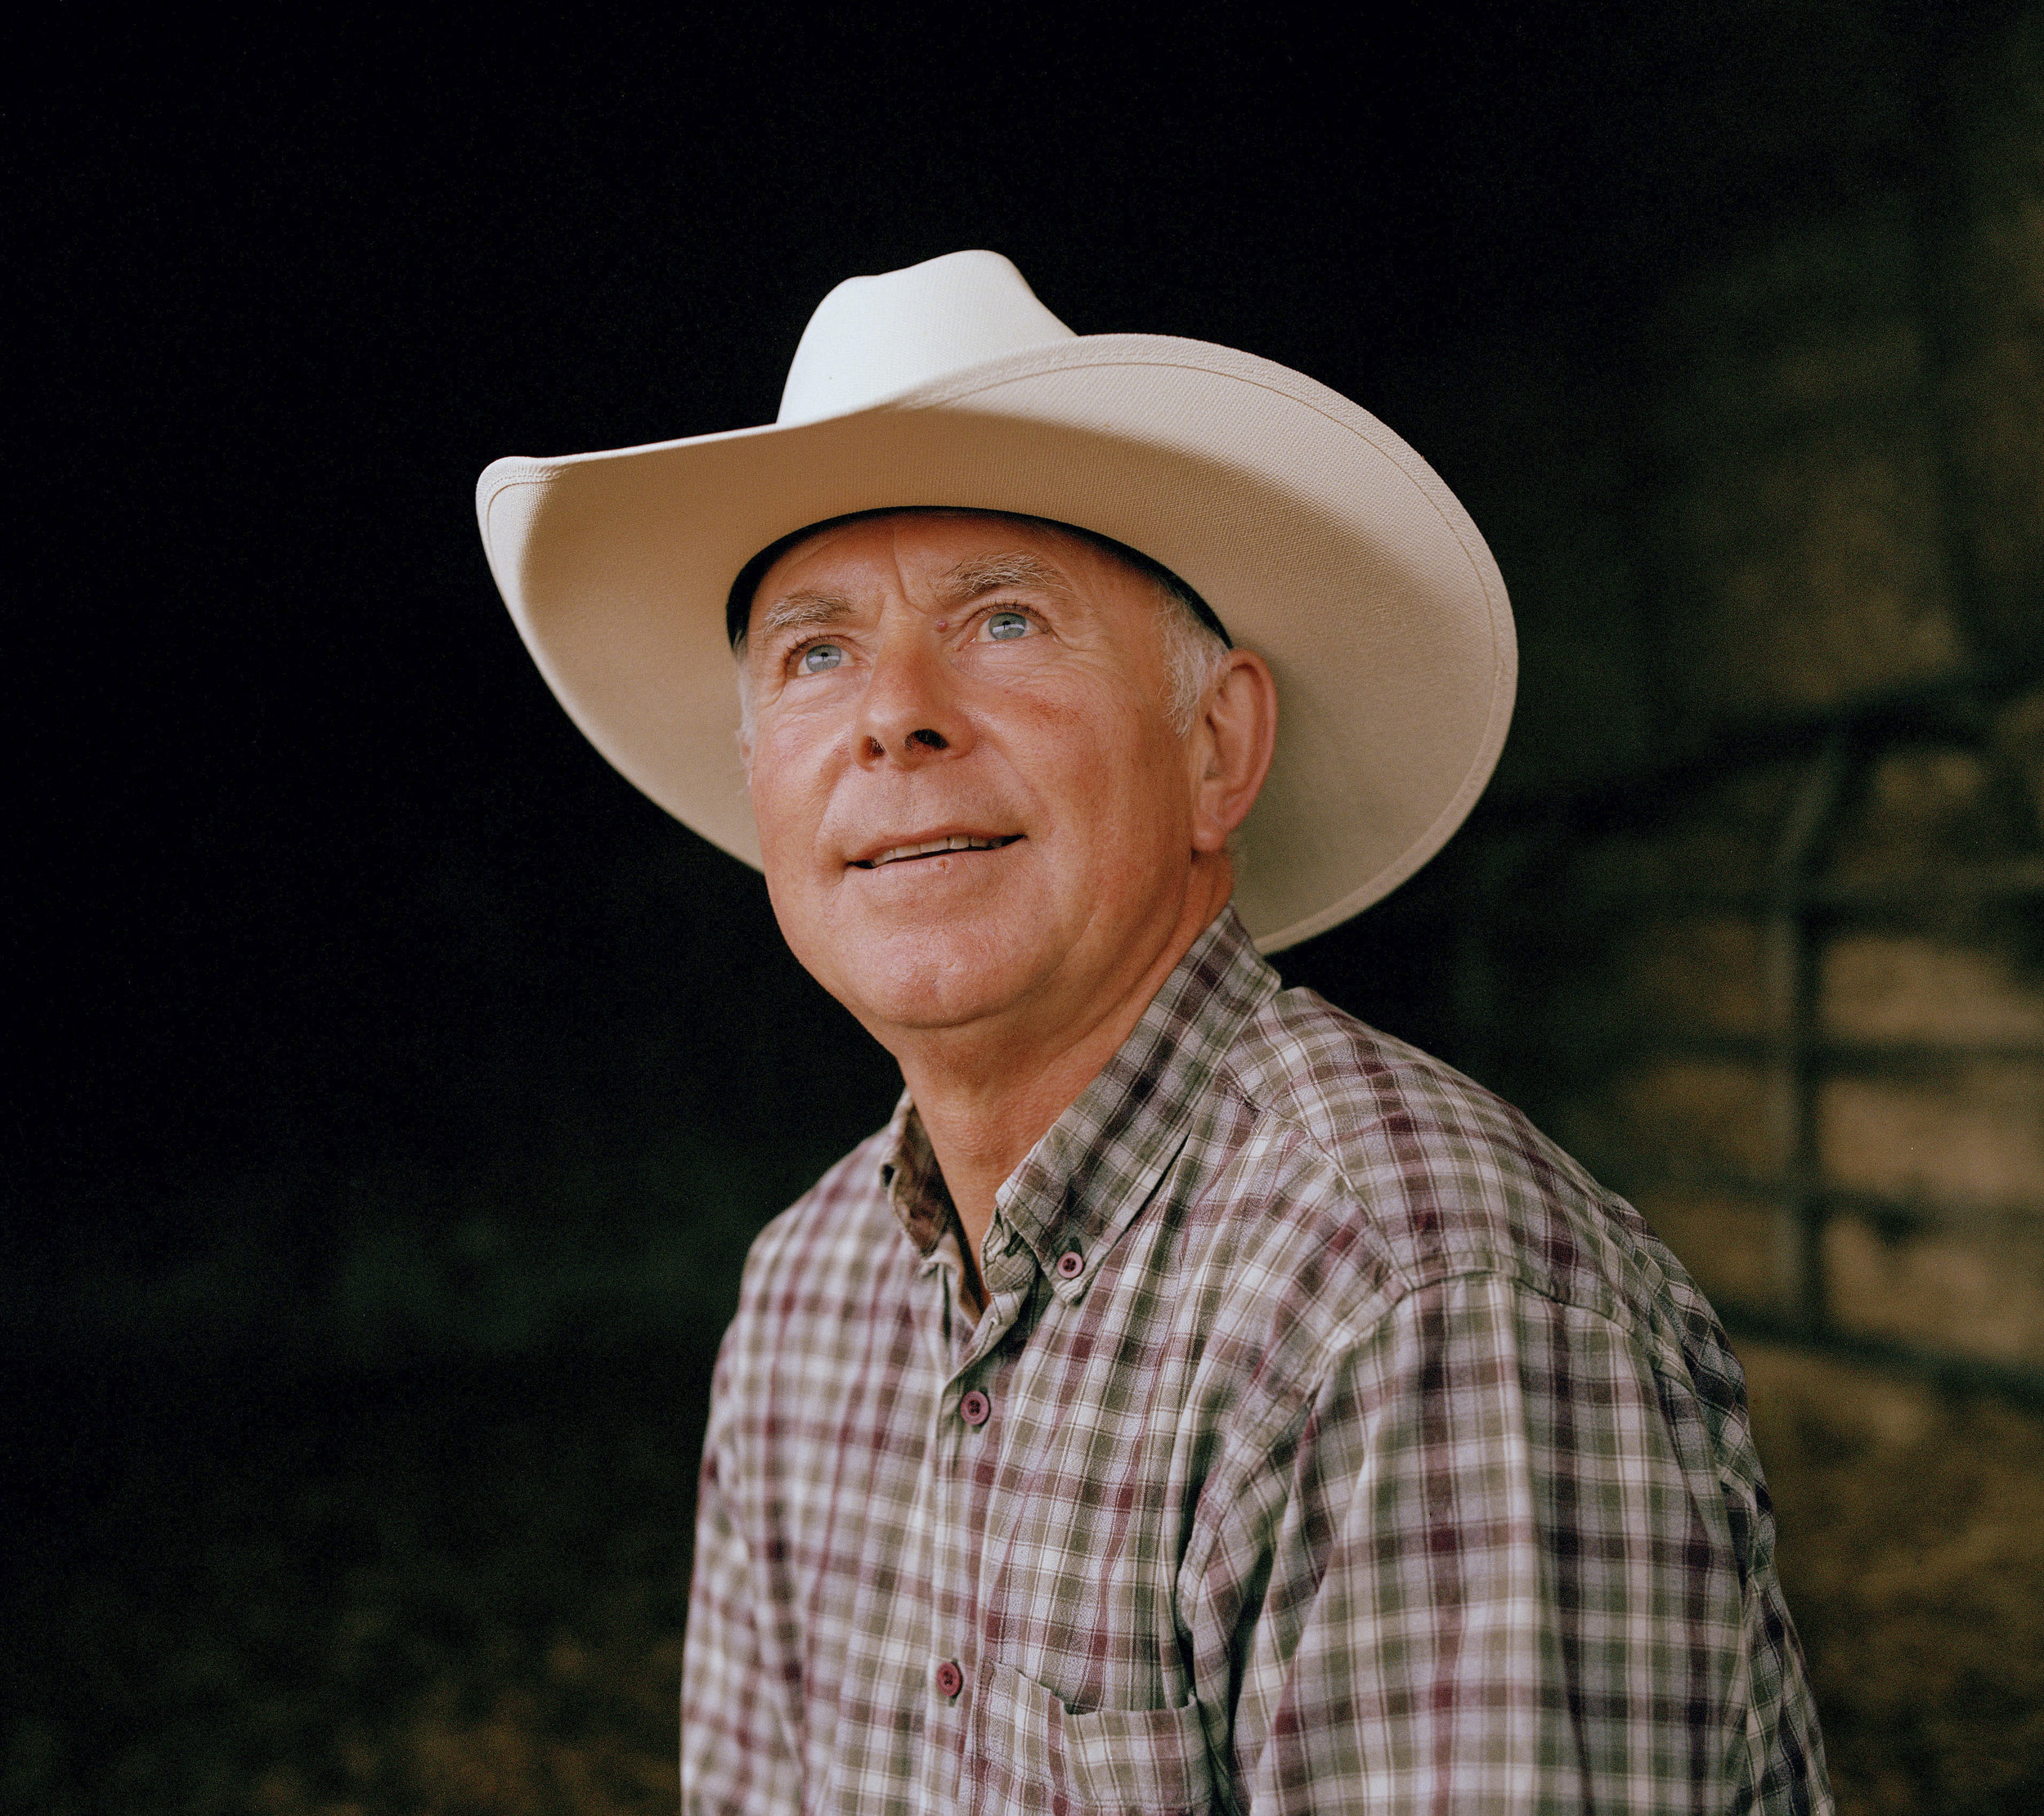 A portrait of western rider Nick Michelle. Nick first found his love for western riding when in 2012 he attended a western riding course in Camelford in Cornwall. After completing the course he travelled to Montana in 2016 to work on a ranch. Upon his return to the UK, he discovered the British Rodeo Cowboy Association and joined straight away to keep the western spirit alive in Devon.